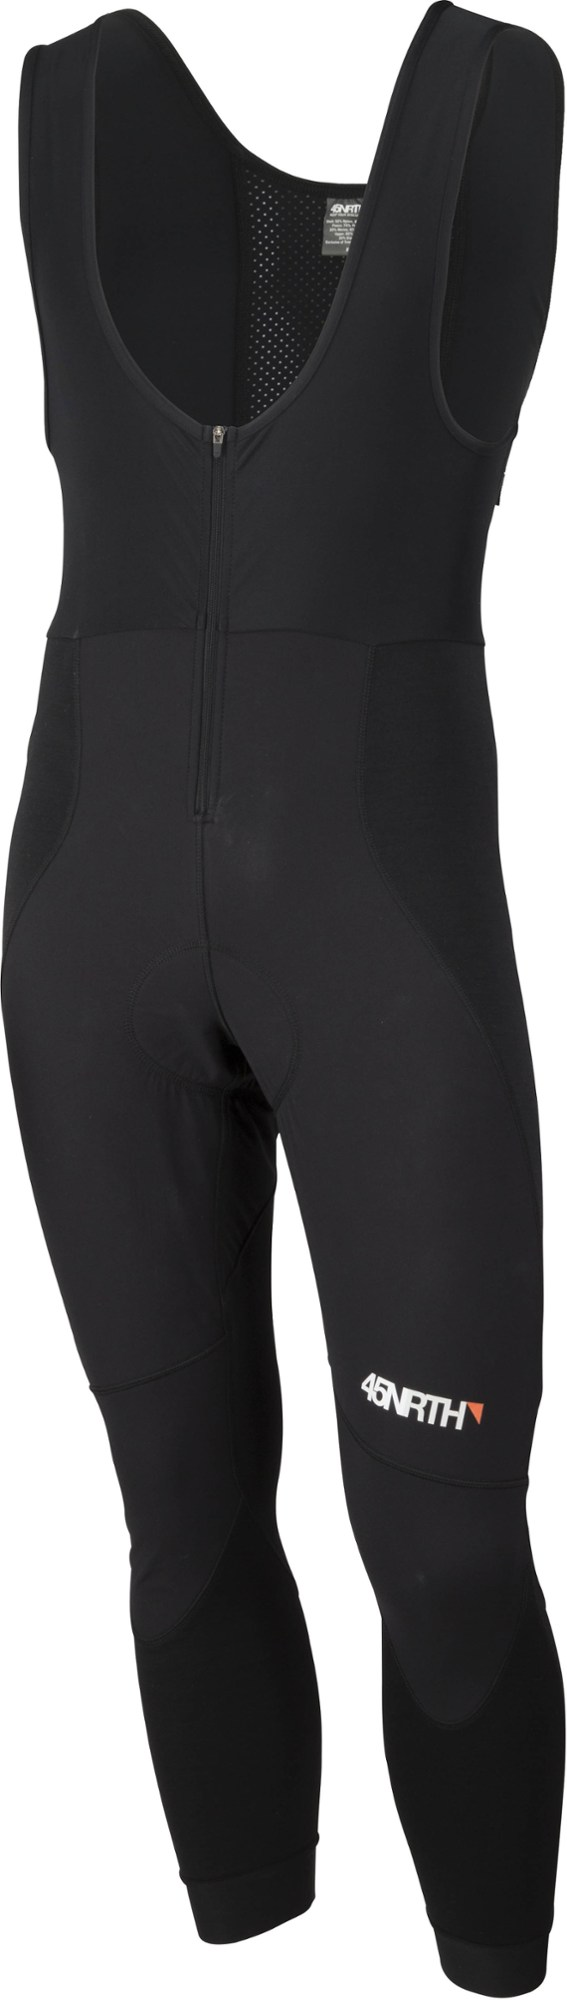 45NRTH Naughtvind Winter Cycling Bib Tights - Men's